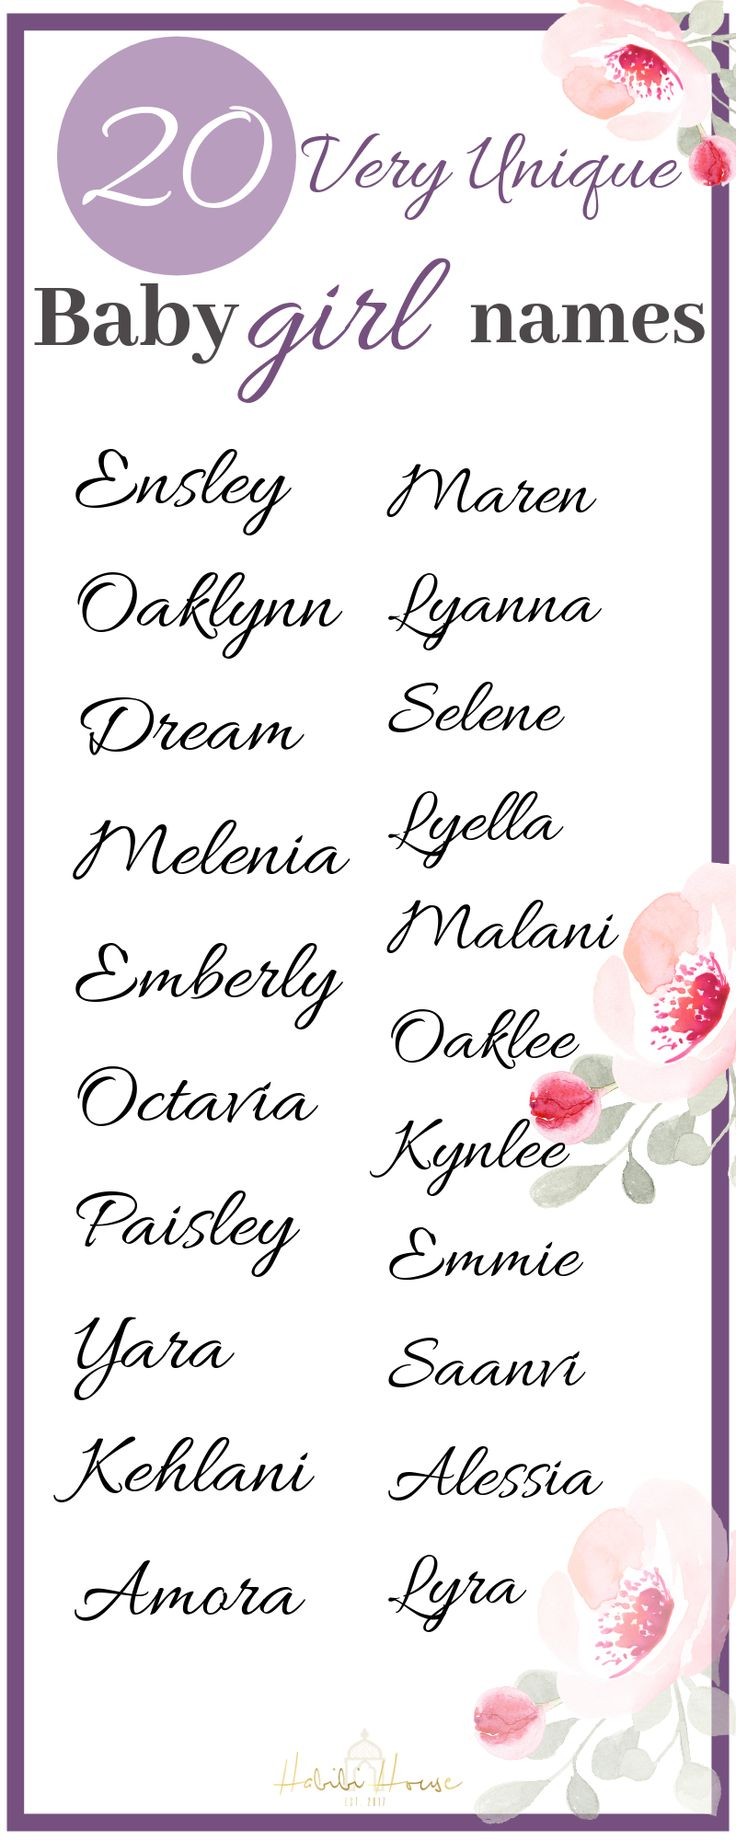 Very Unique Baby Girl Names